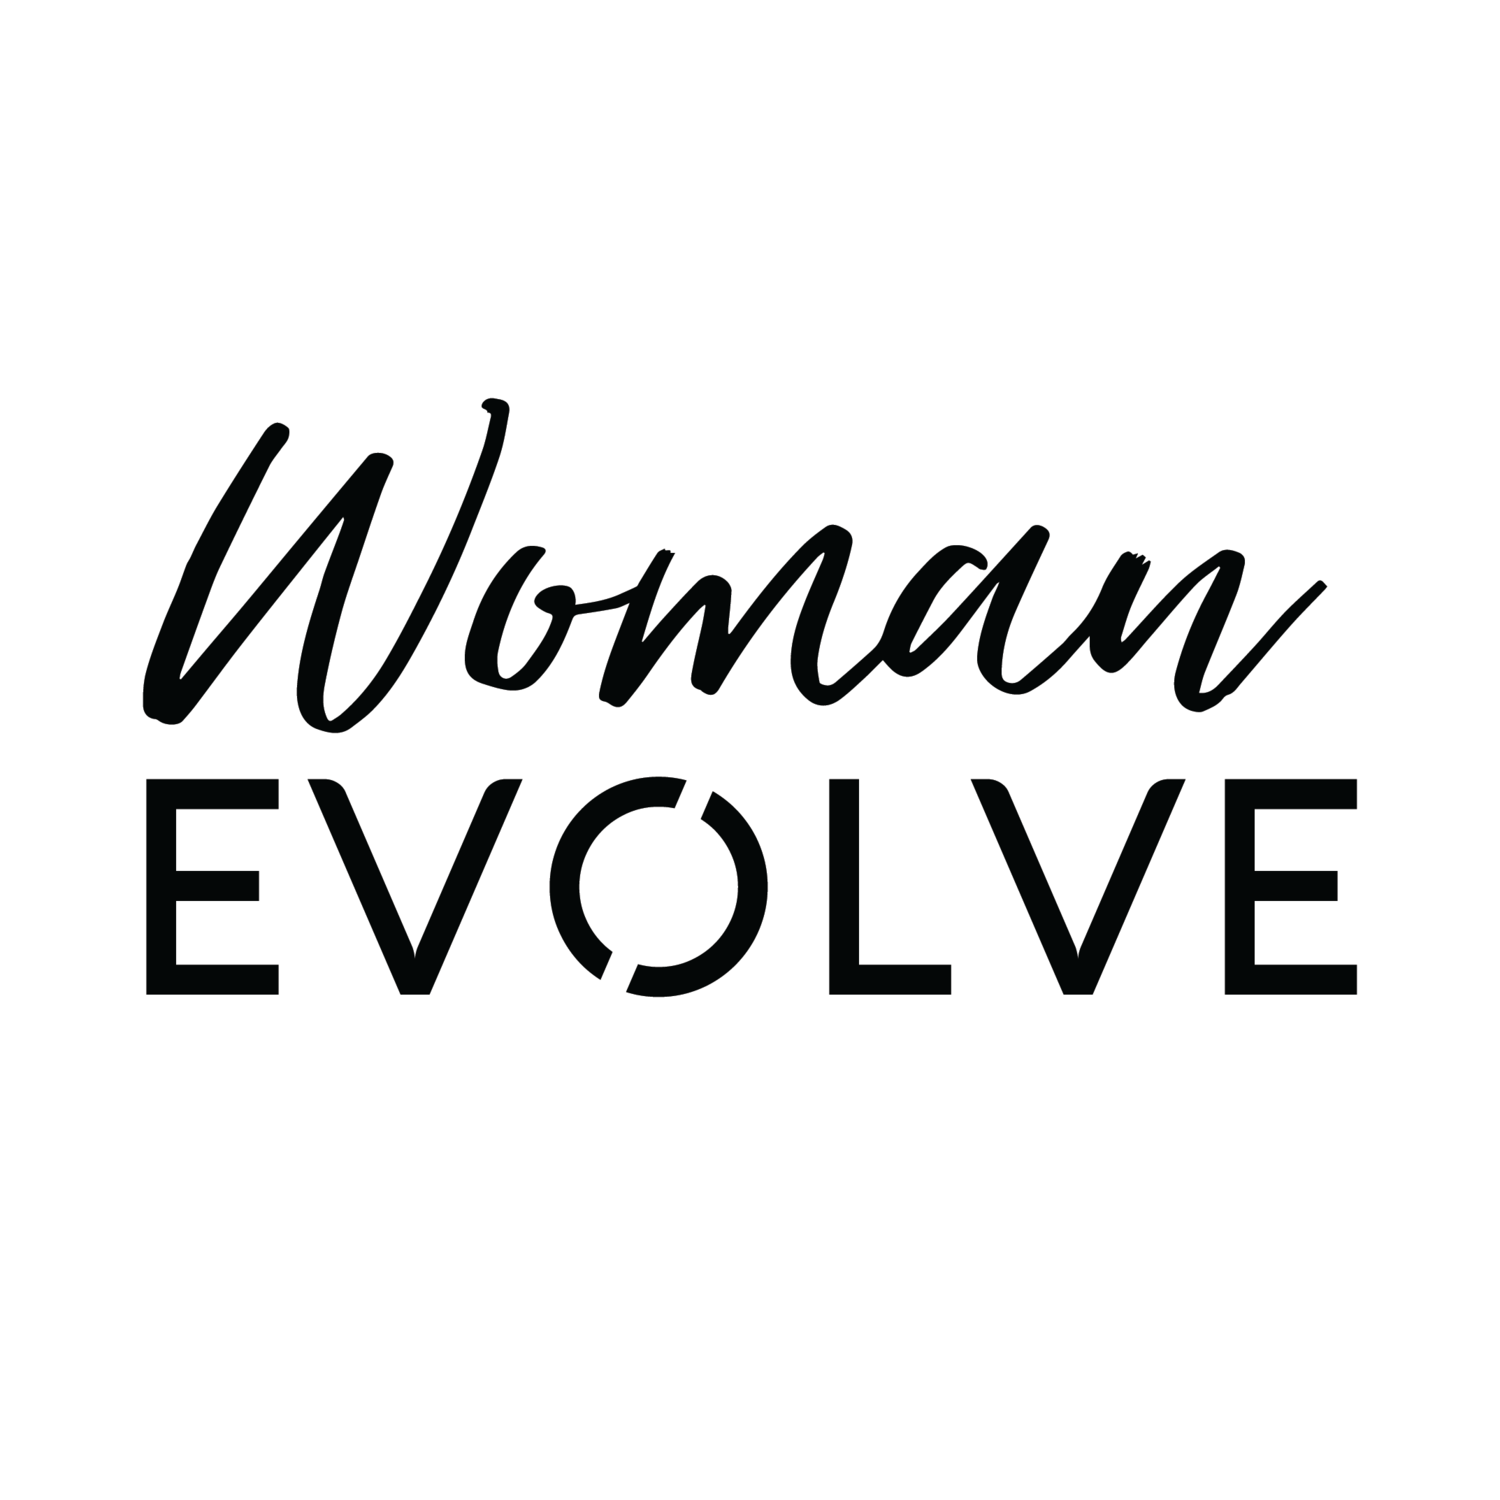 Conference — Woman Evolve